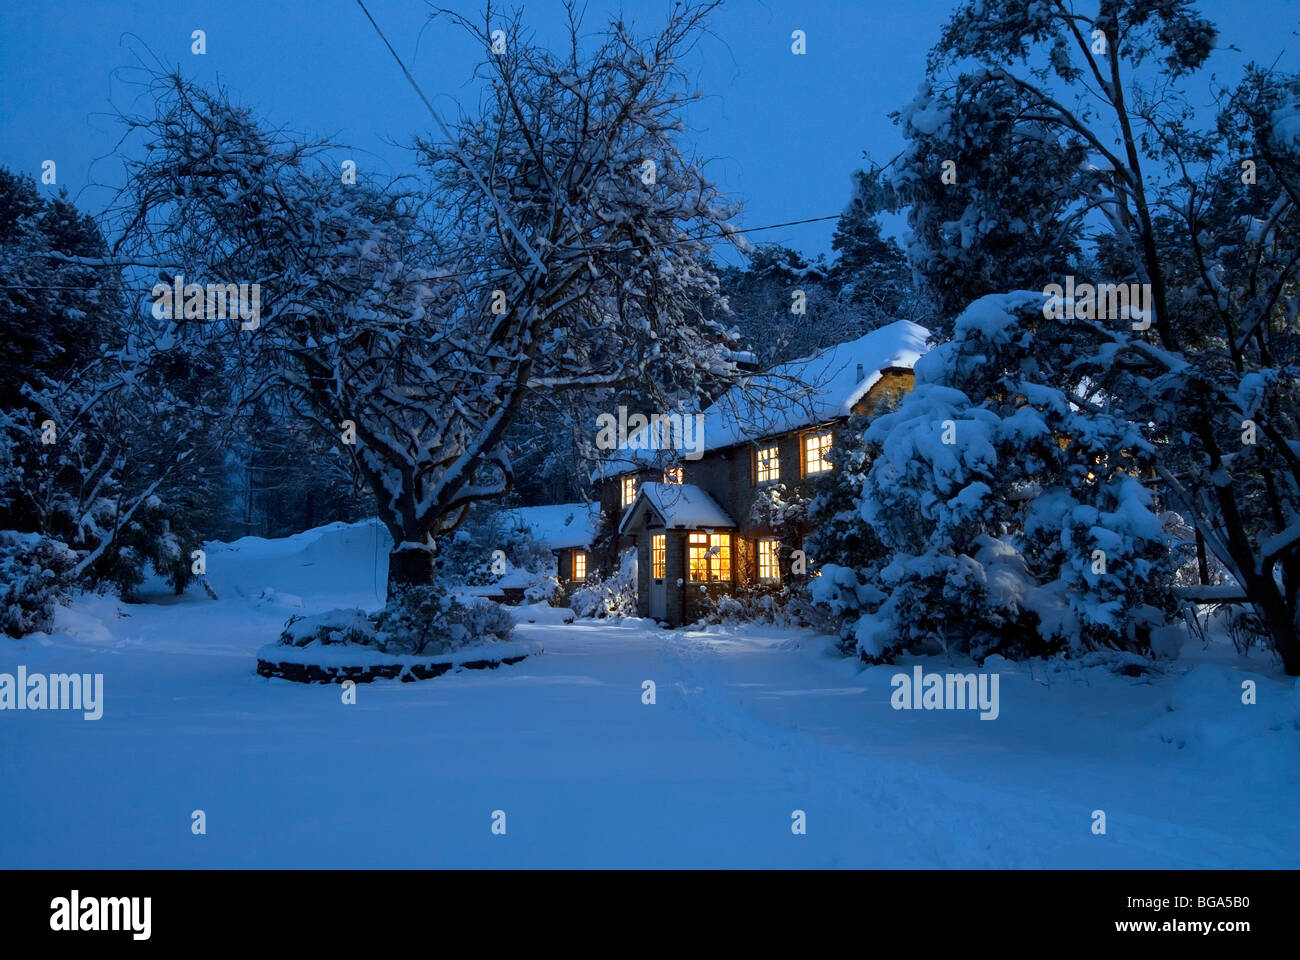 Christmas Card Image Of A Snowy Landscape Scene With Cozy